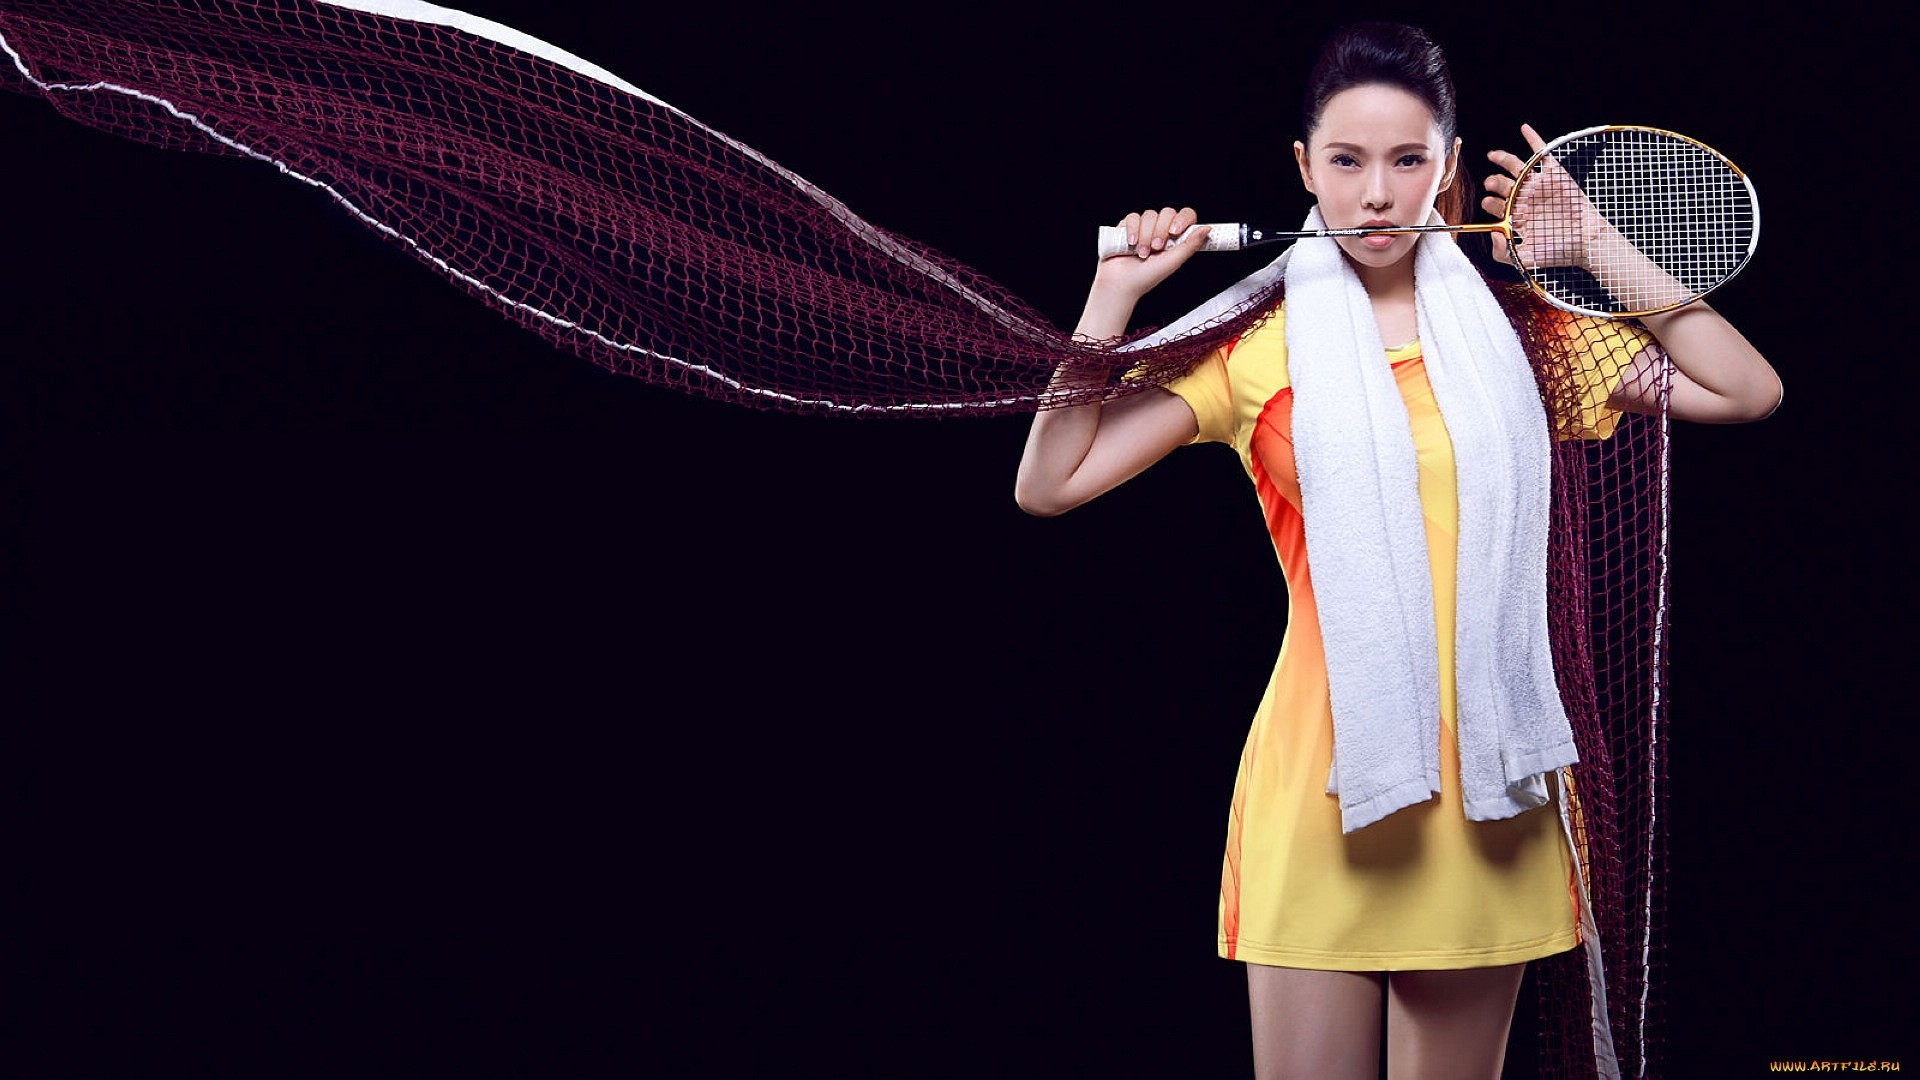 Badminton PC Wallpaper HD